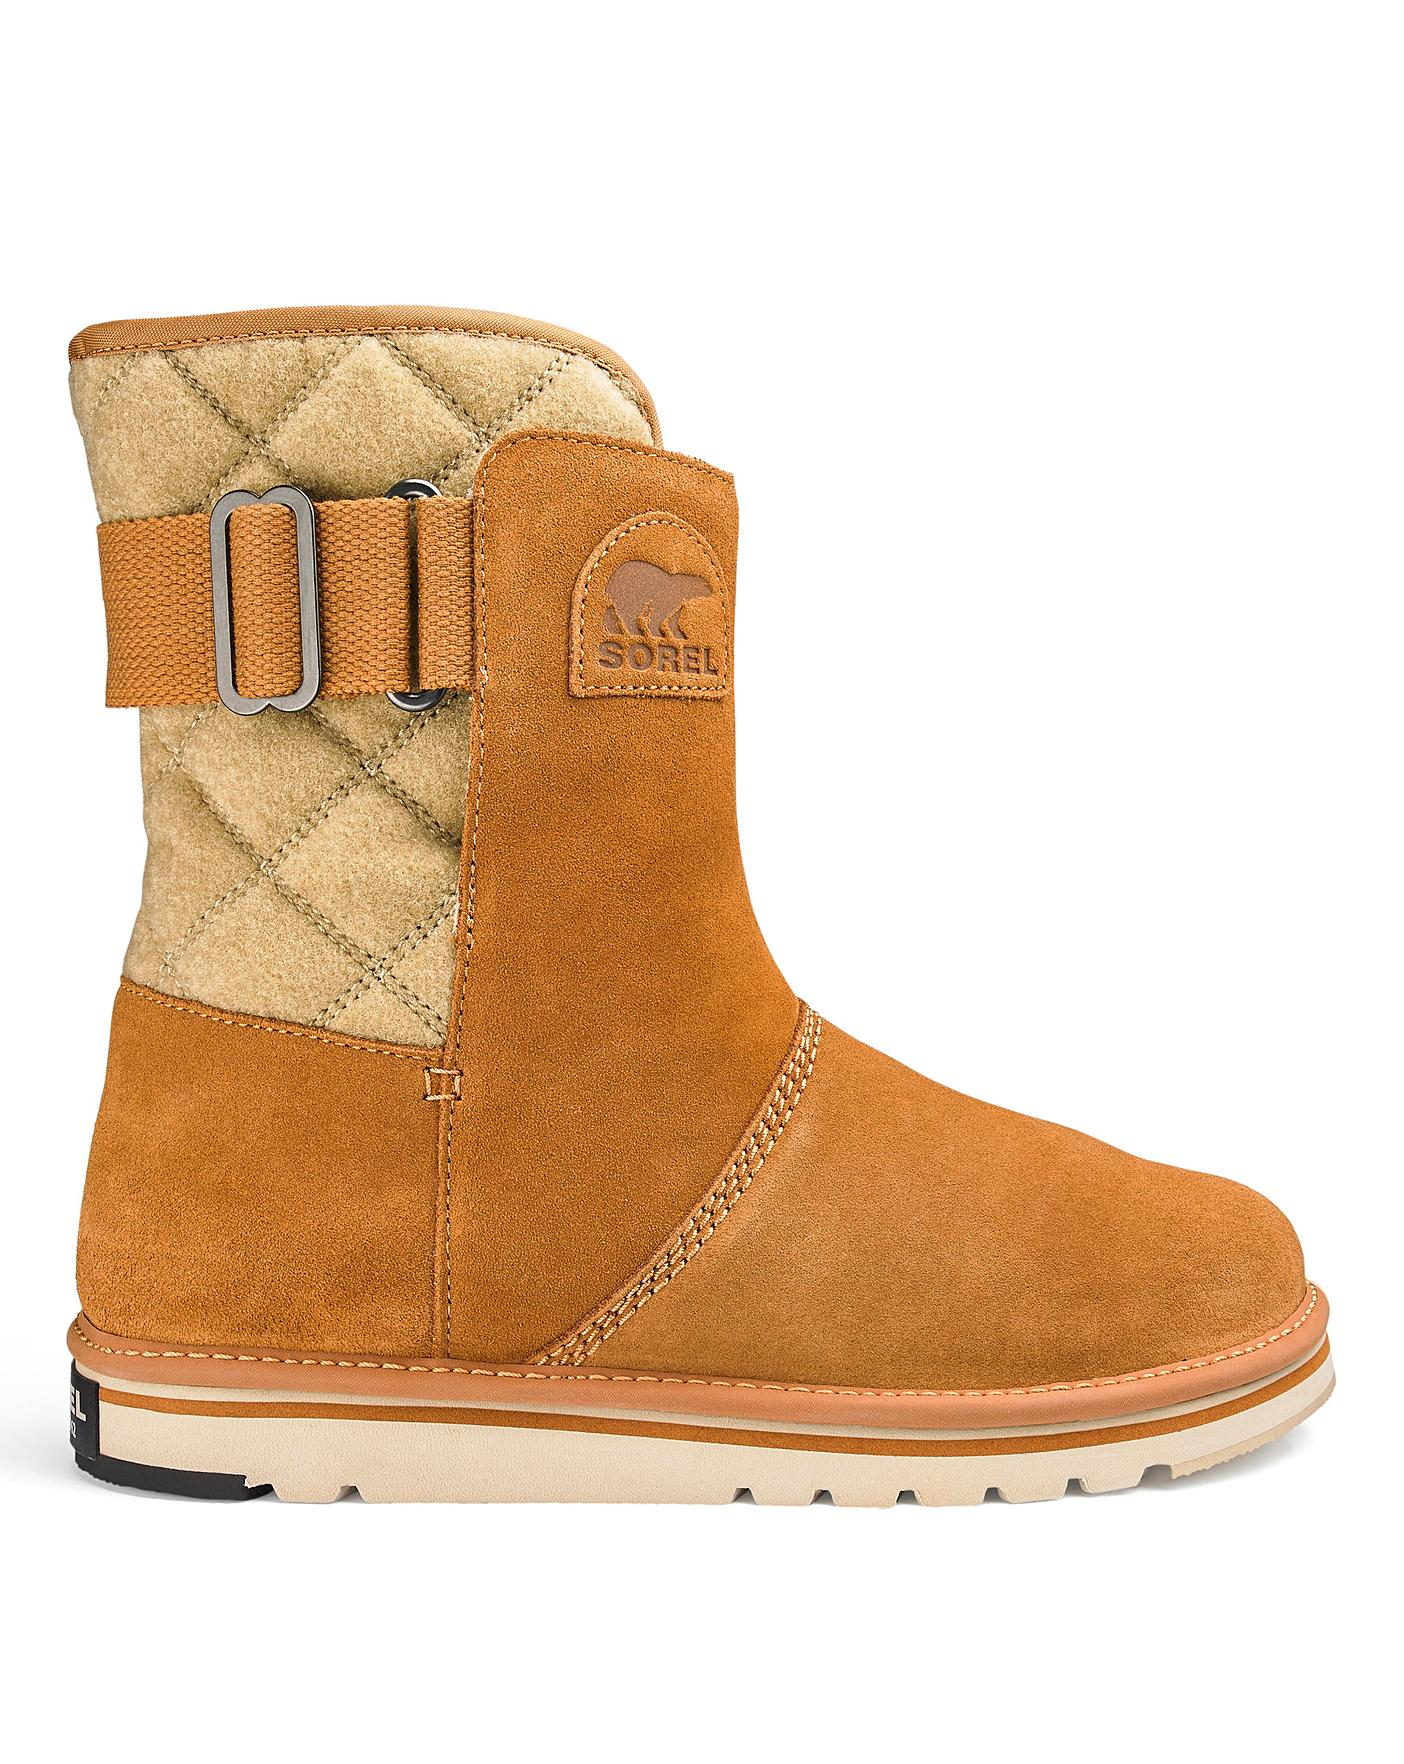 official store newest collection classic style Sorel Newbie Boots | Marisota